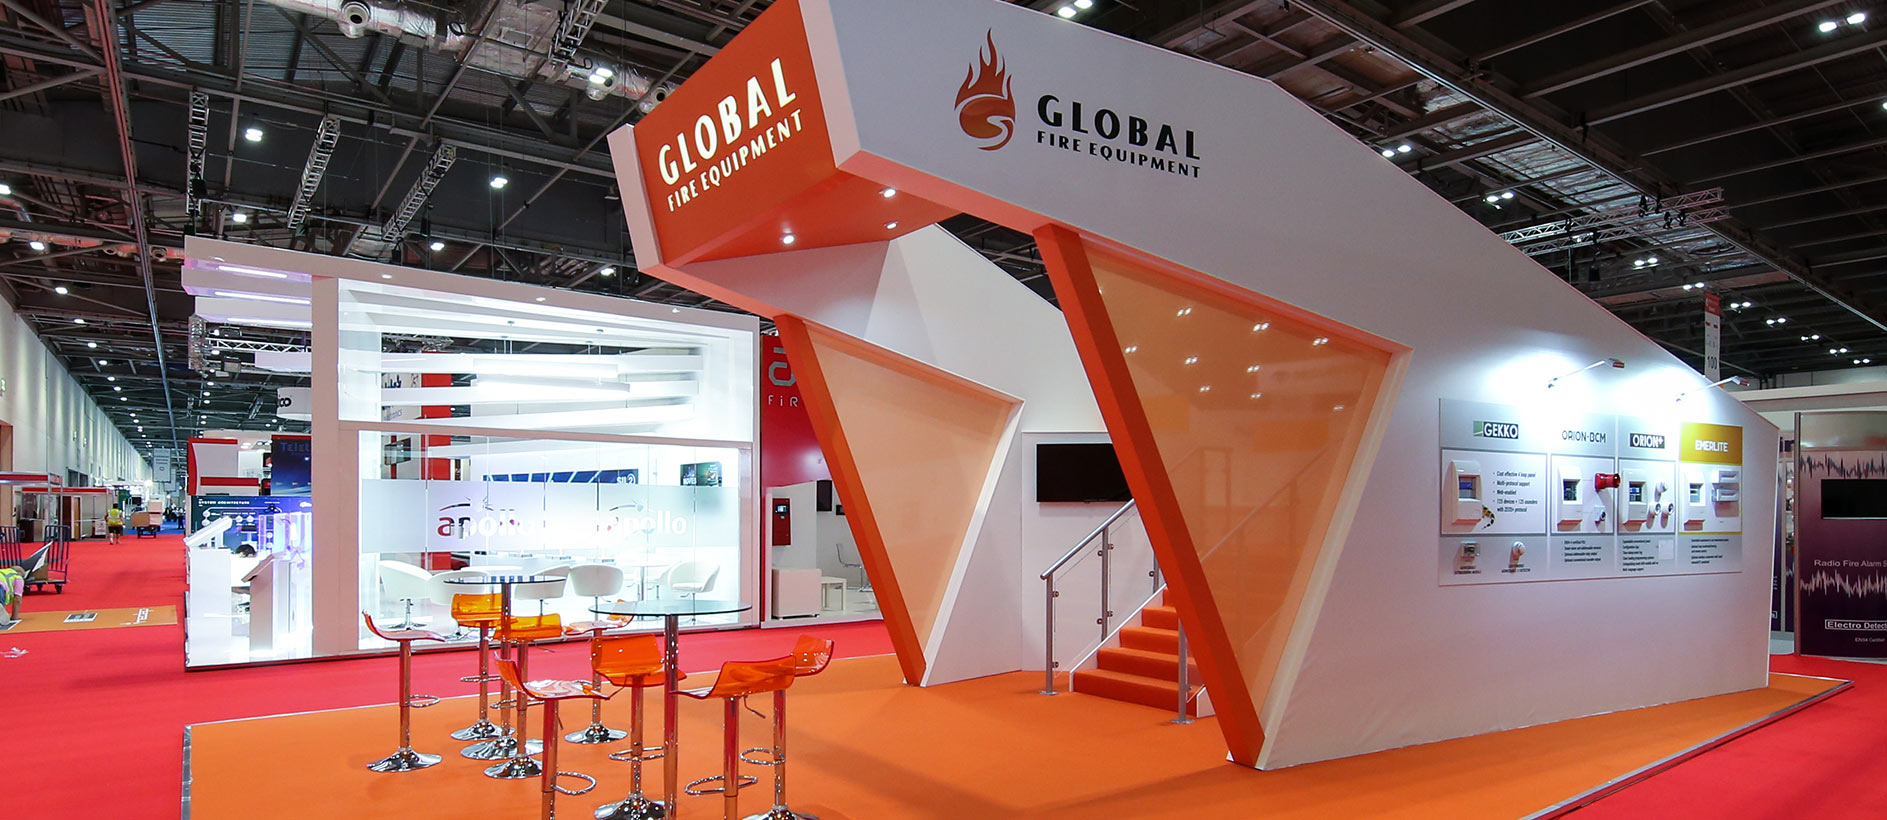 An eye-catching exhibition stand for Global Fire Equipment